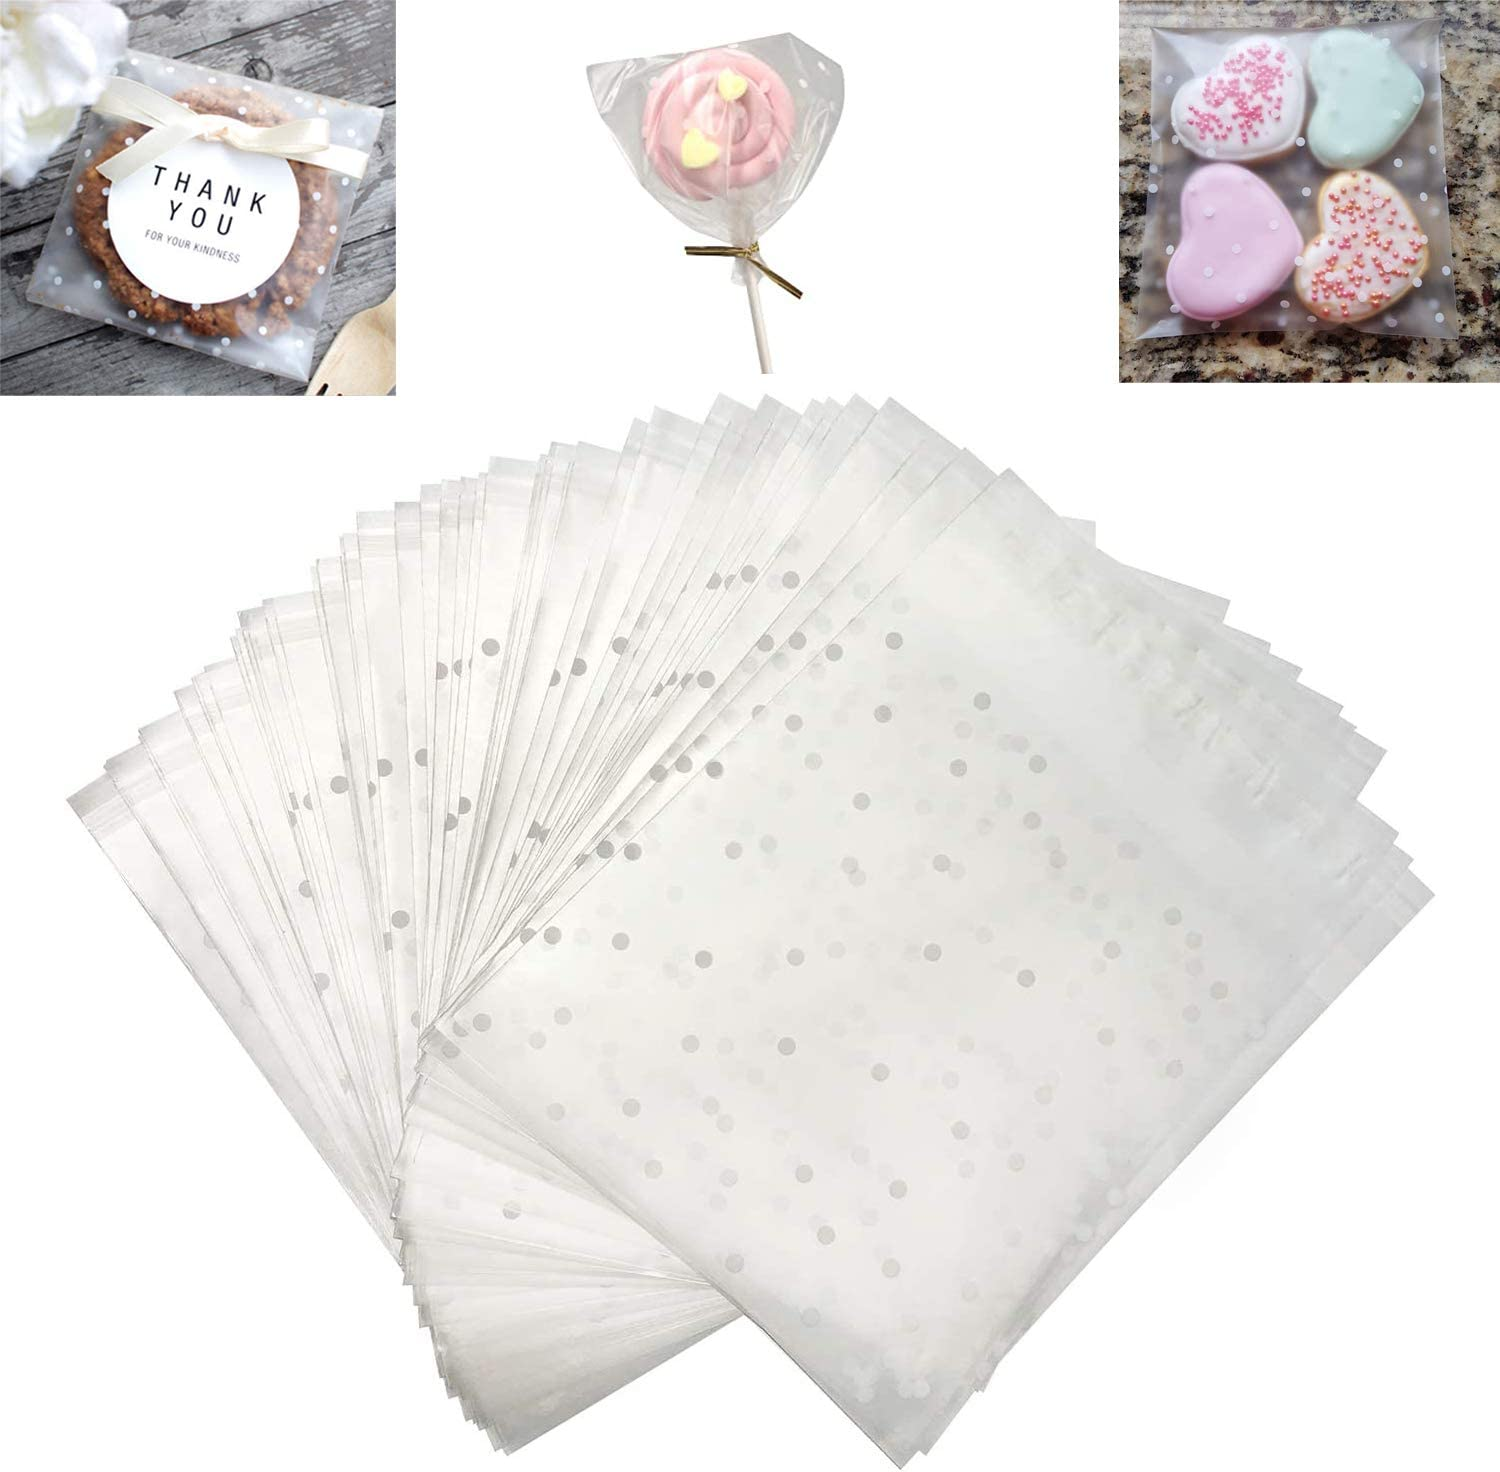 ICEYLI 100Pcs White Polka Dot Chocolate Candy Gift Bags Cellophane Bag Cookie Bag,Frosted Self-adhesive Packaging Bag Bag Translucent (3.9 x 3.9 inches)